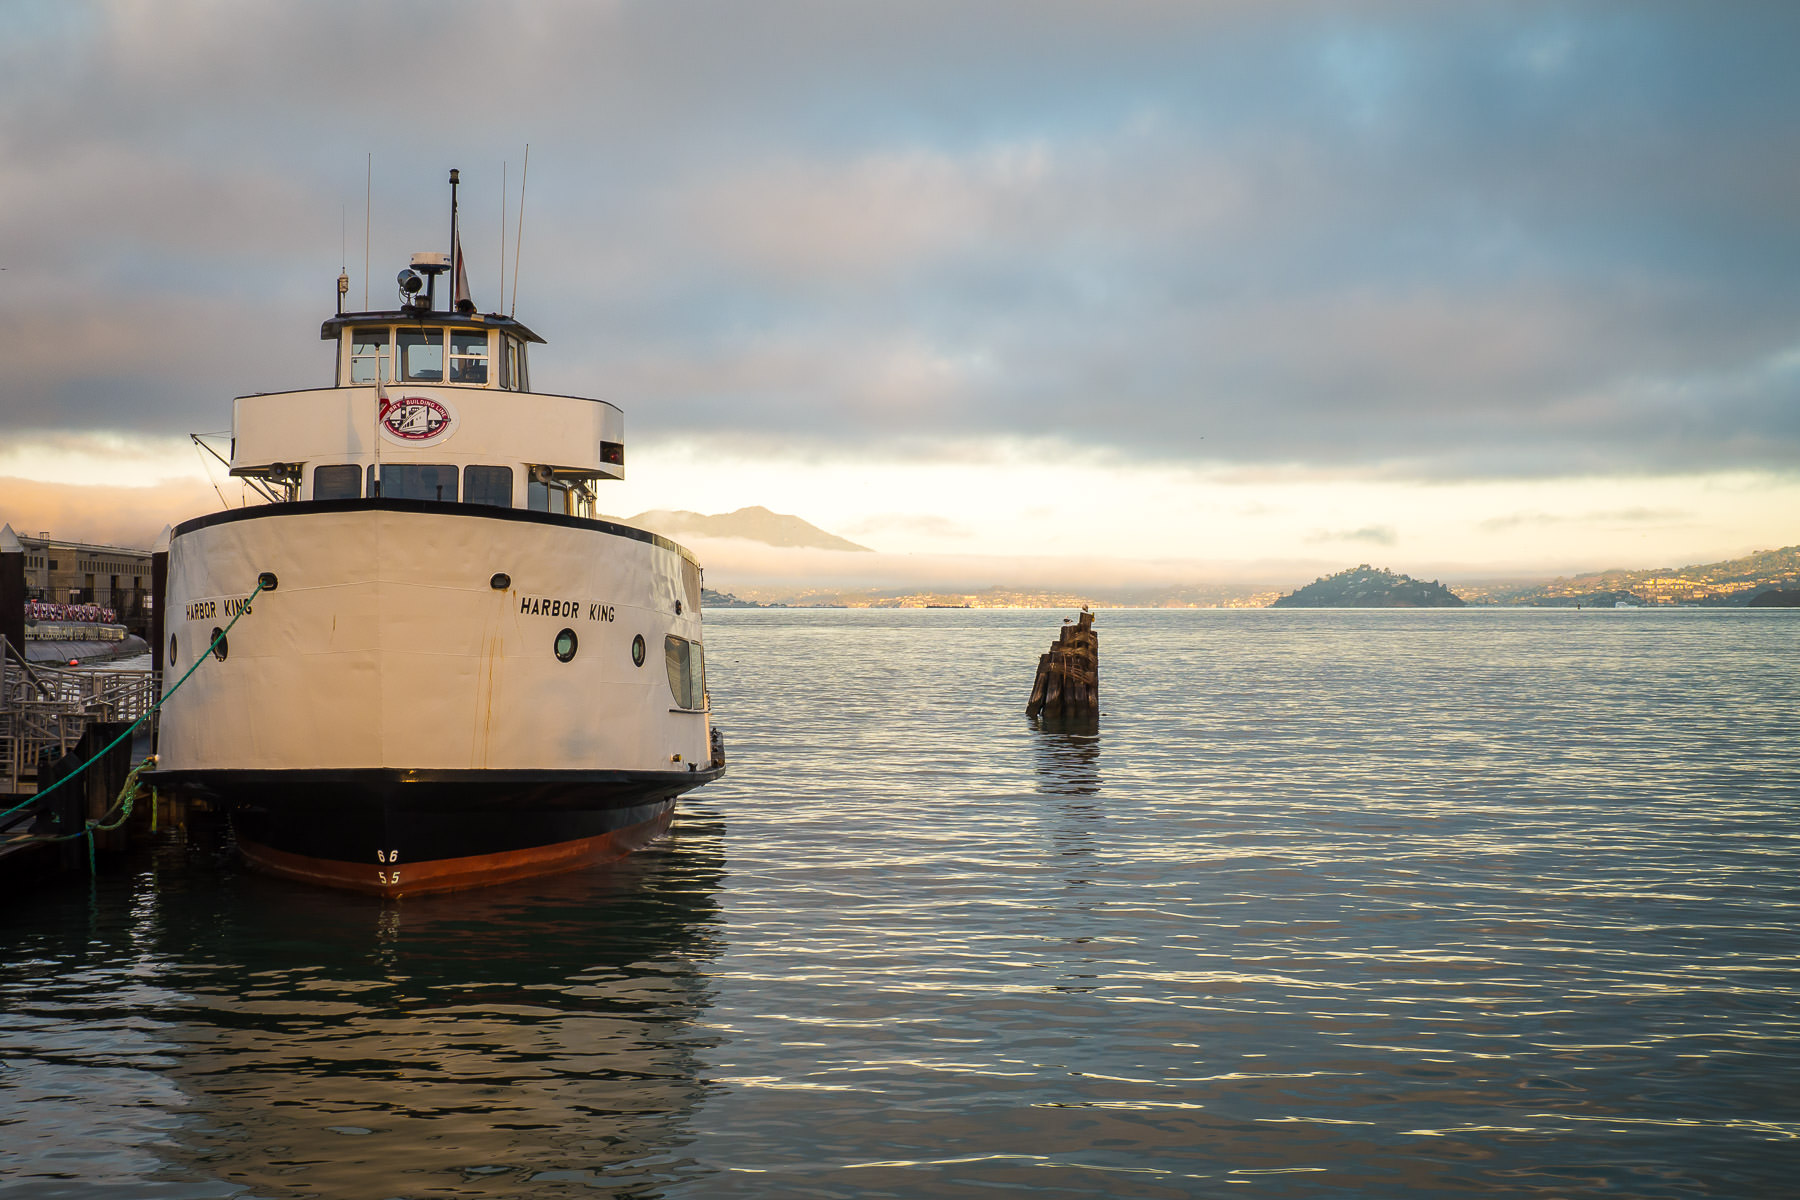 The Red and White Fleet's Harbor King sits quietly at her berth just after sunrise at San Francisco's Fisherman's Wharf.